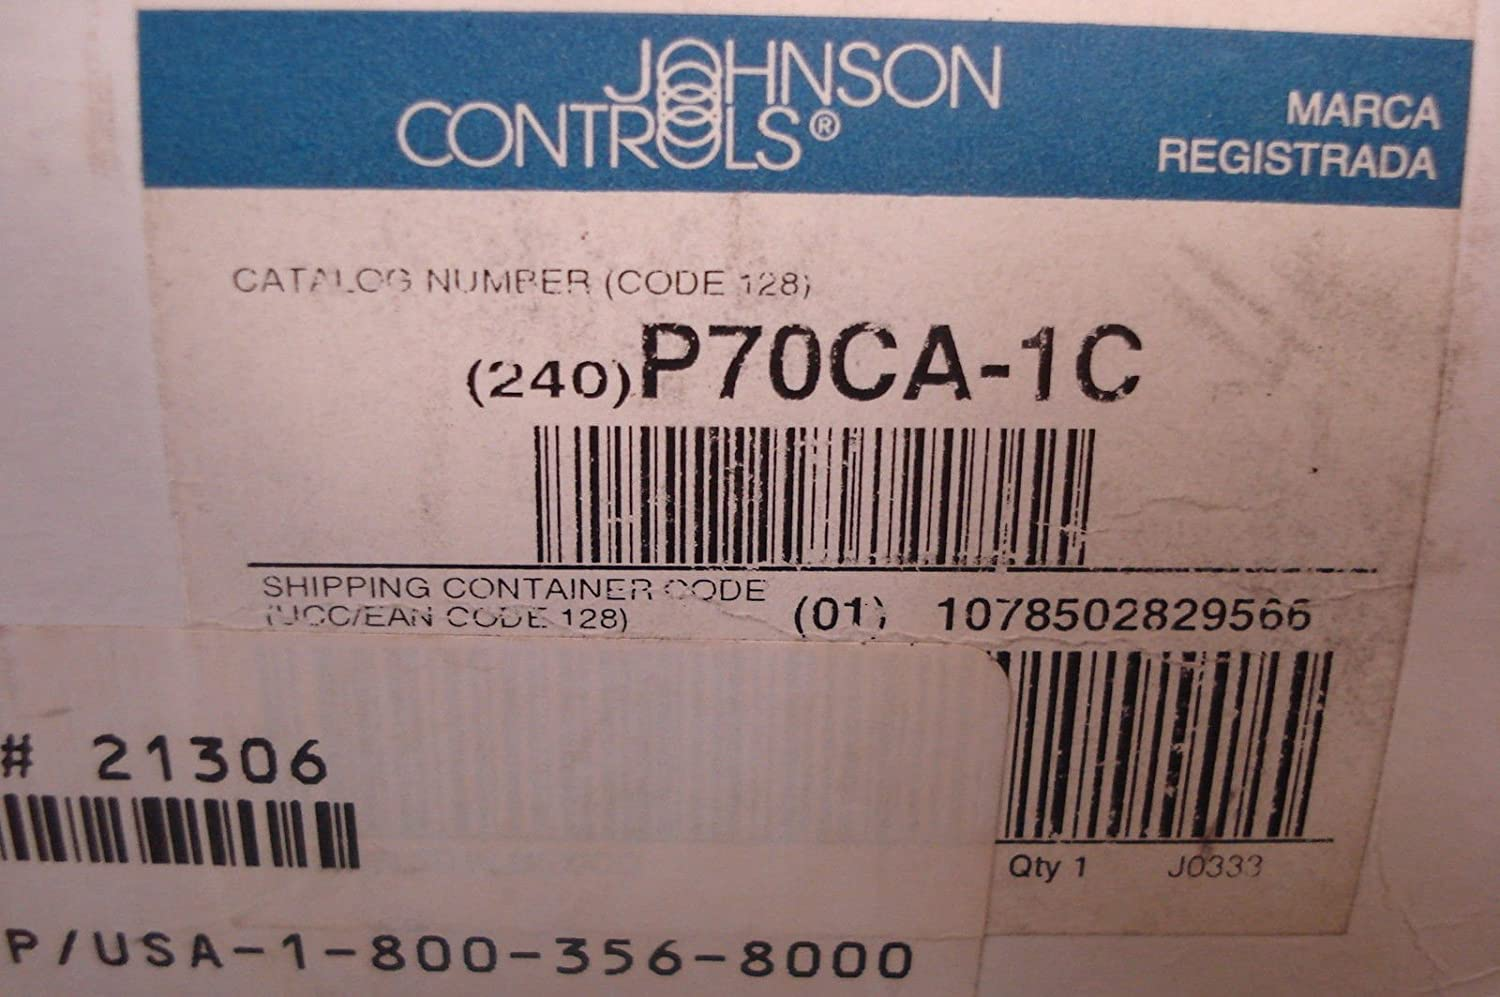 Open High 36 Capillary Johnson Controls P70CA-1C All-Range Control for Non-Corrosive Refrigerants Single-Pole 1//4 Flare Nut 100 psi Maximum Working Pressure Single-Throw